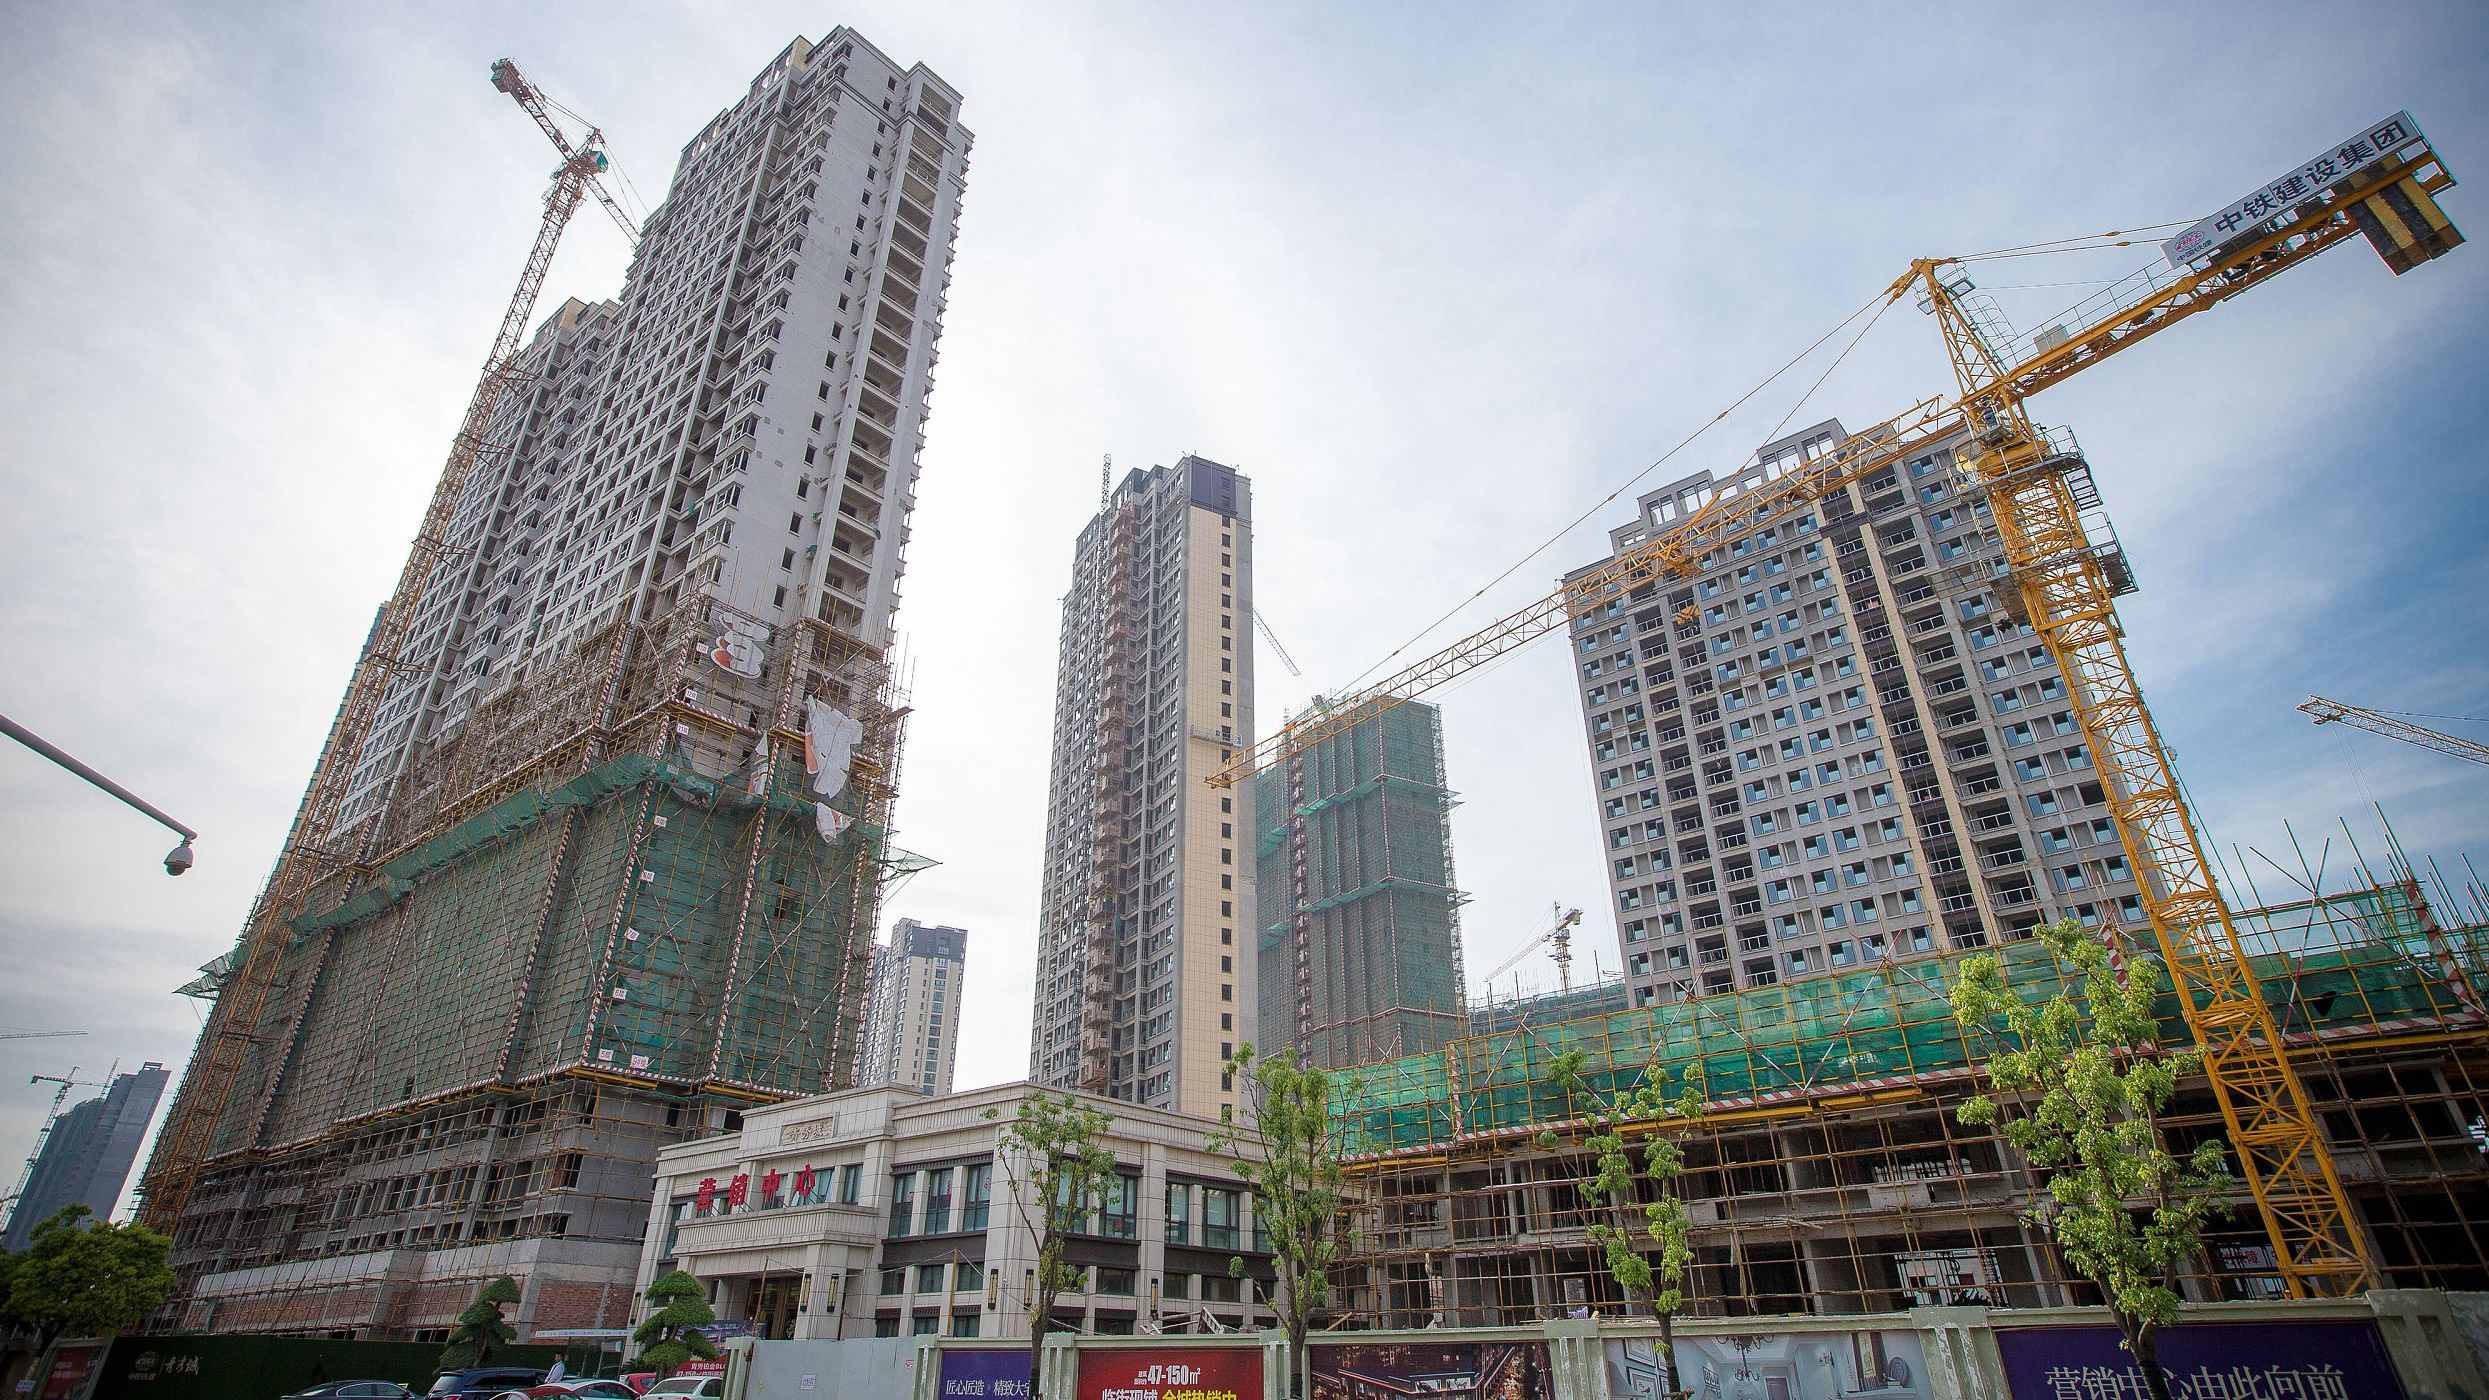 China's fixed-asset investment growth continues to pick up